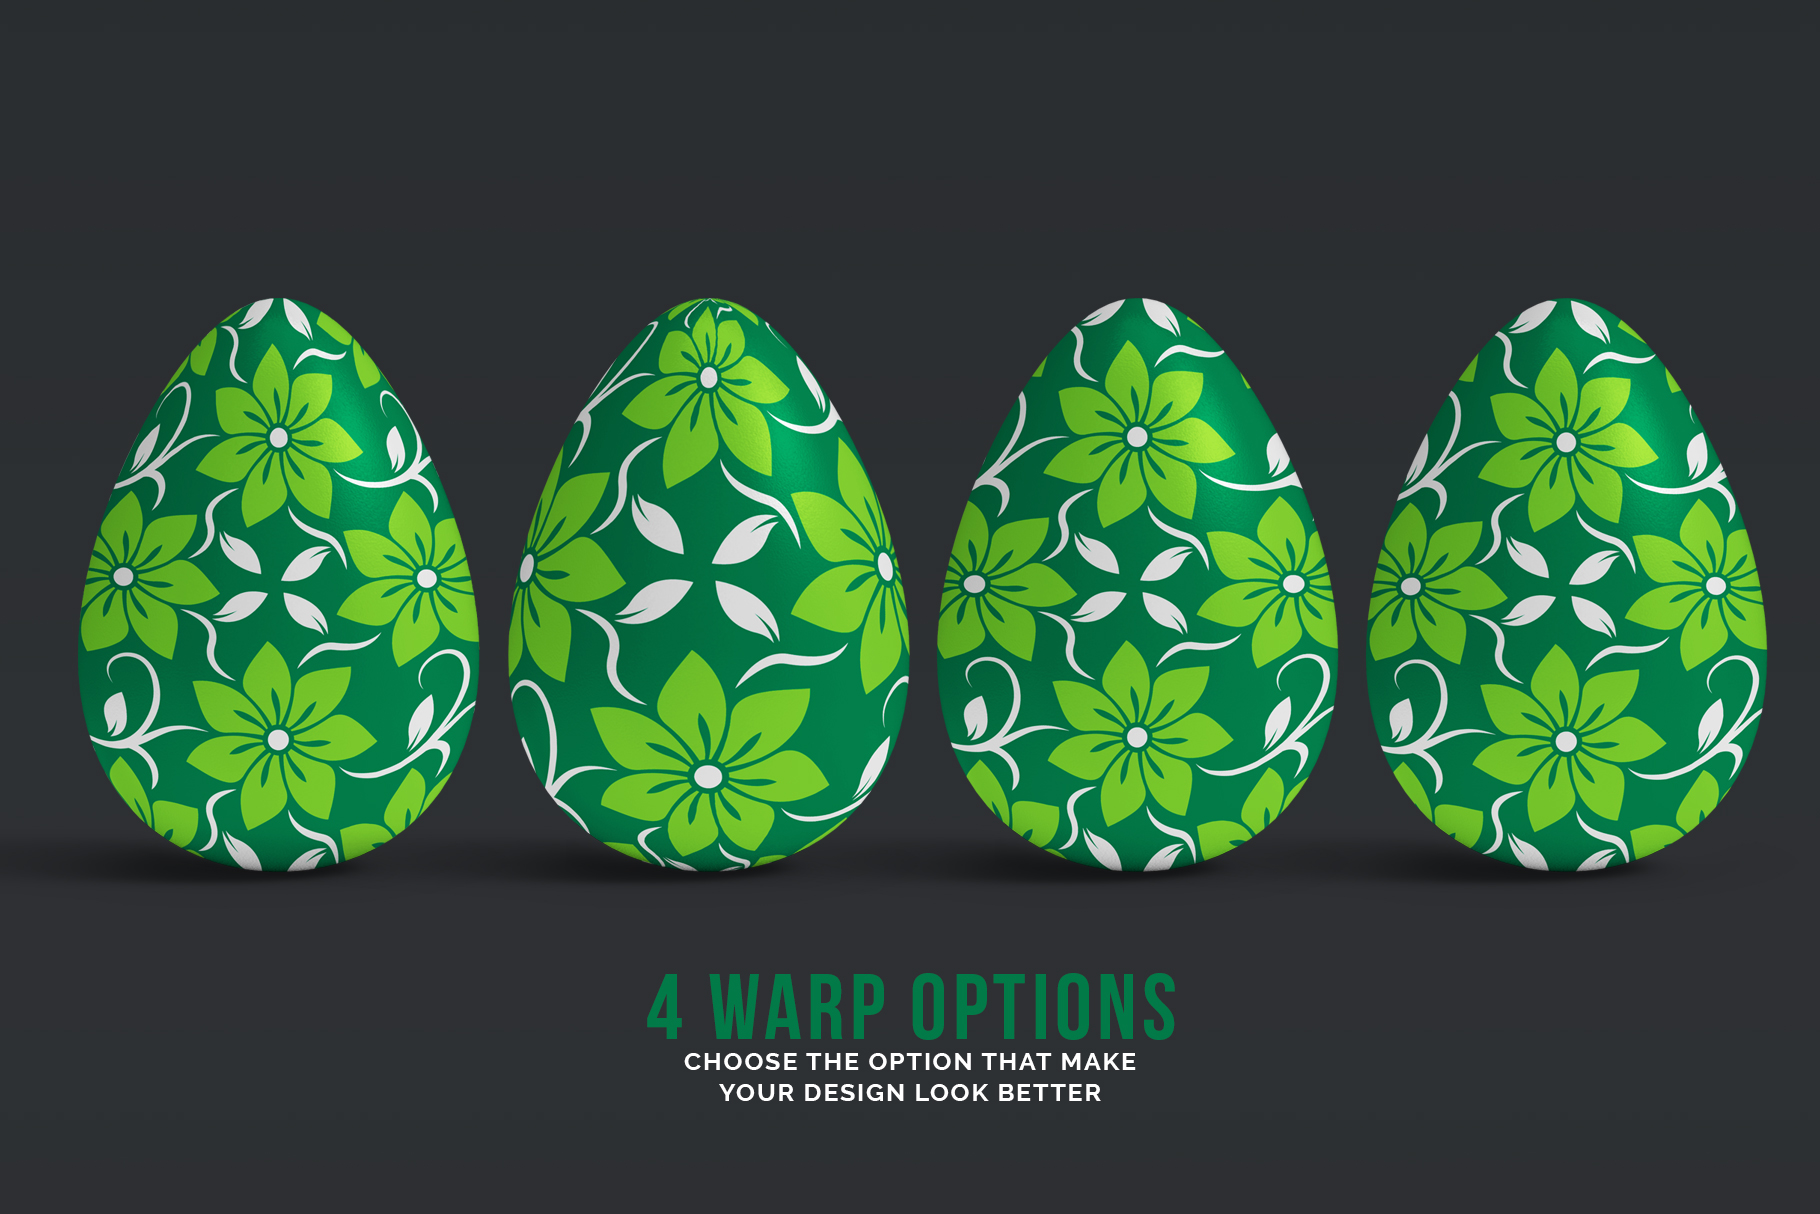 Easter Egg Mockups and Images example image 5